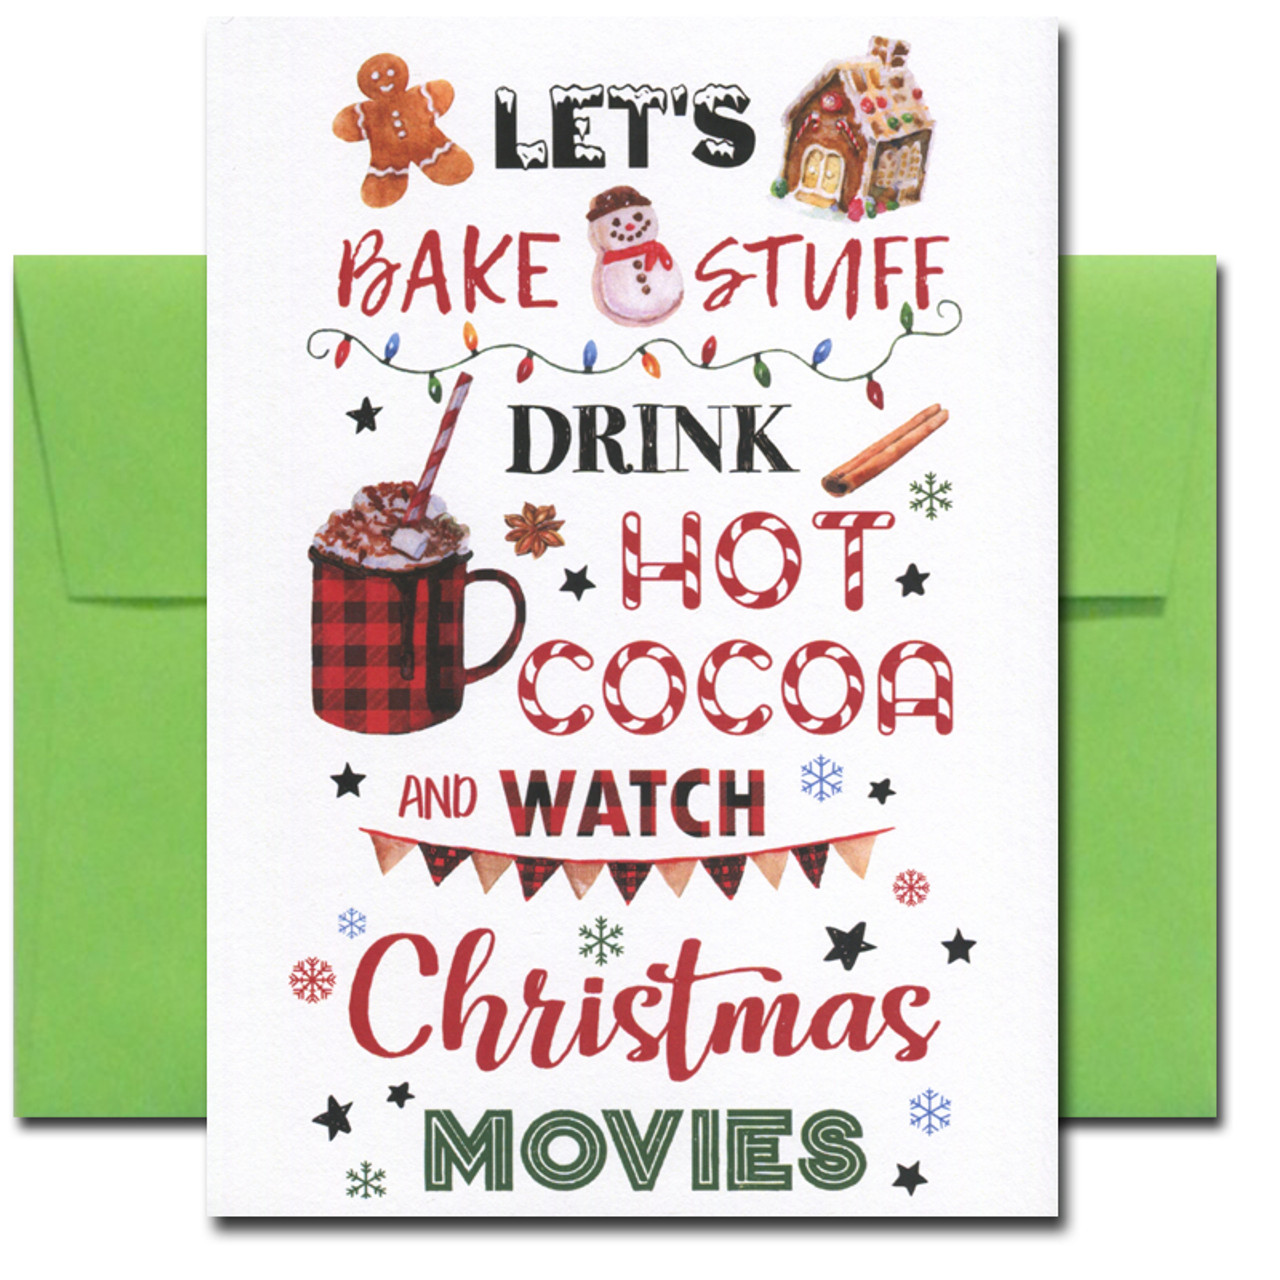 Let's Bake Stuff holiday card cover features a watercolor illustration and the words: Let's bake stuff, drink hot cocoa and watch Christmas movies